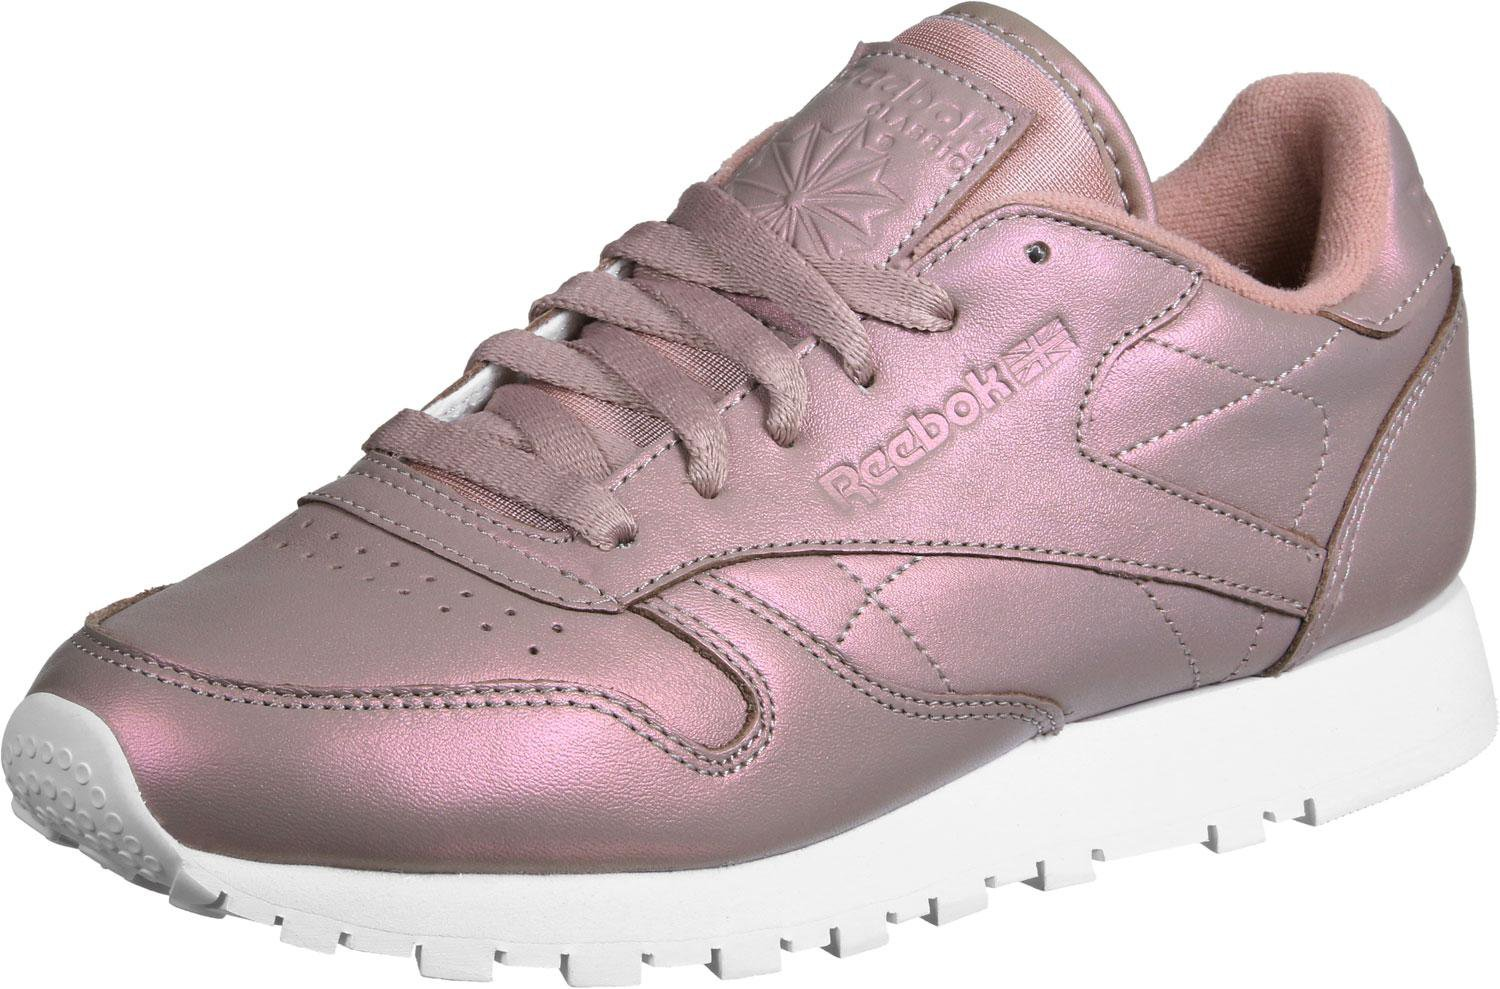 super popular 1c5a1 b4c72 Reebok Classic Leather Pearlized rose gold/white